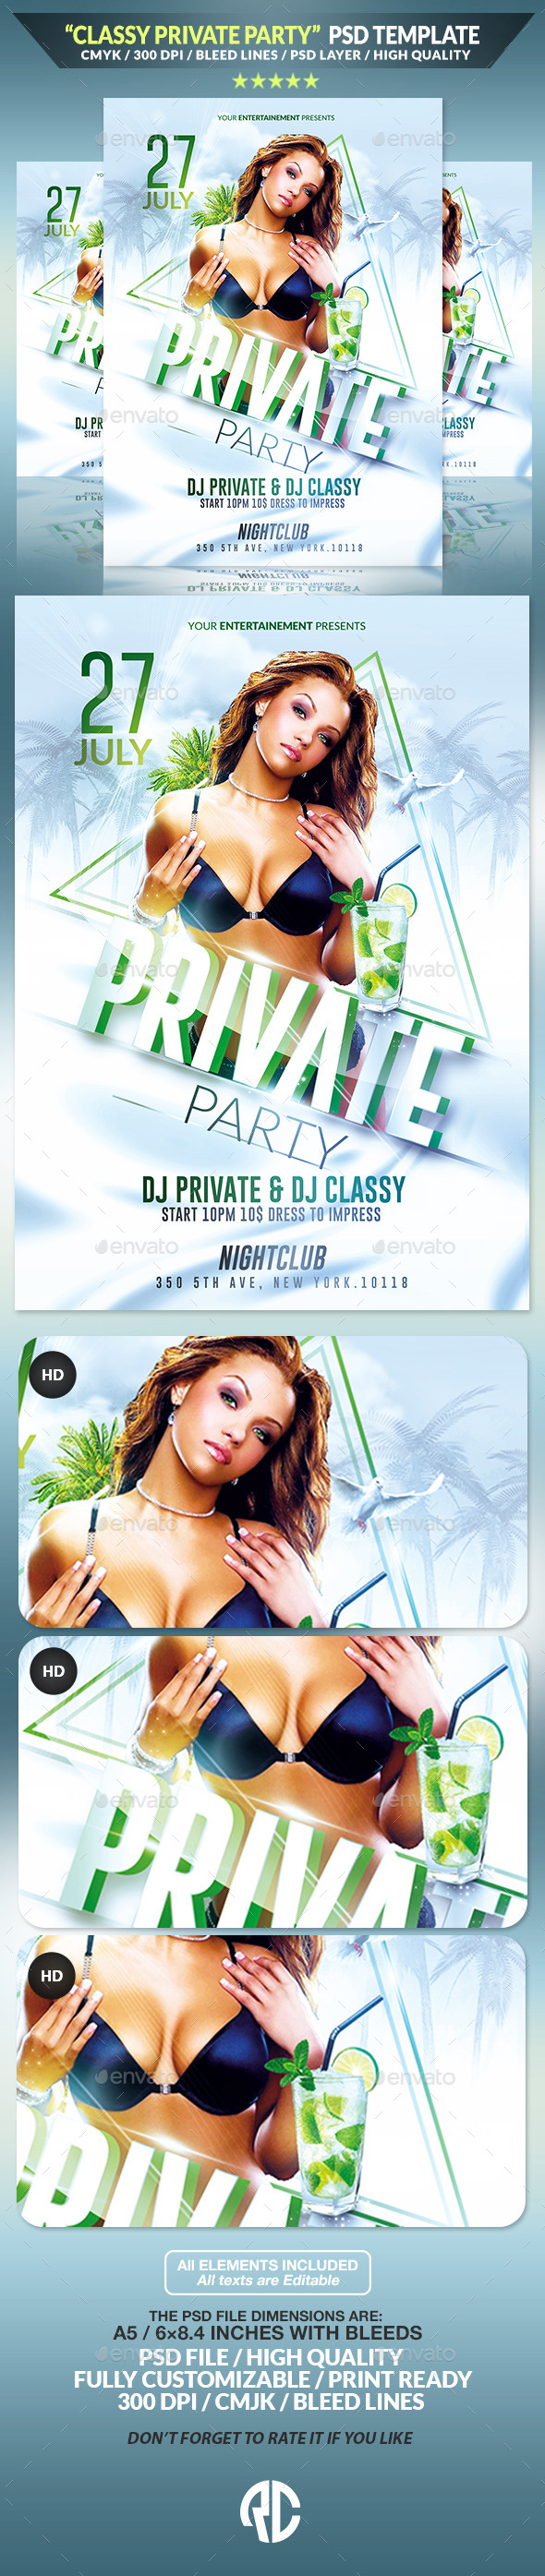 Classy Private Party | Psd Flyer Template - Events Flyers